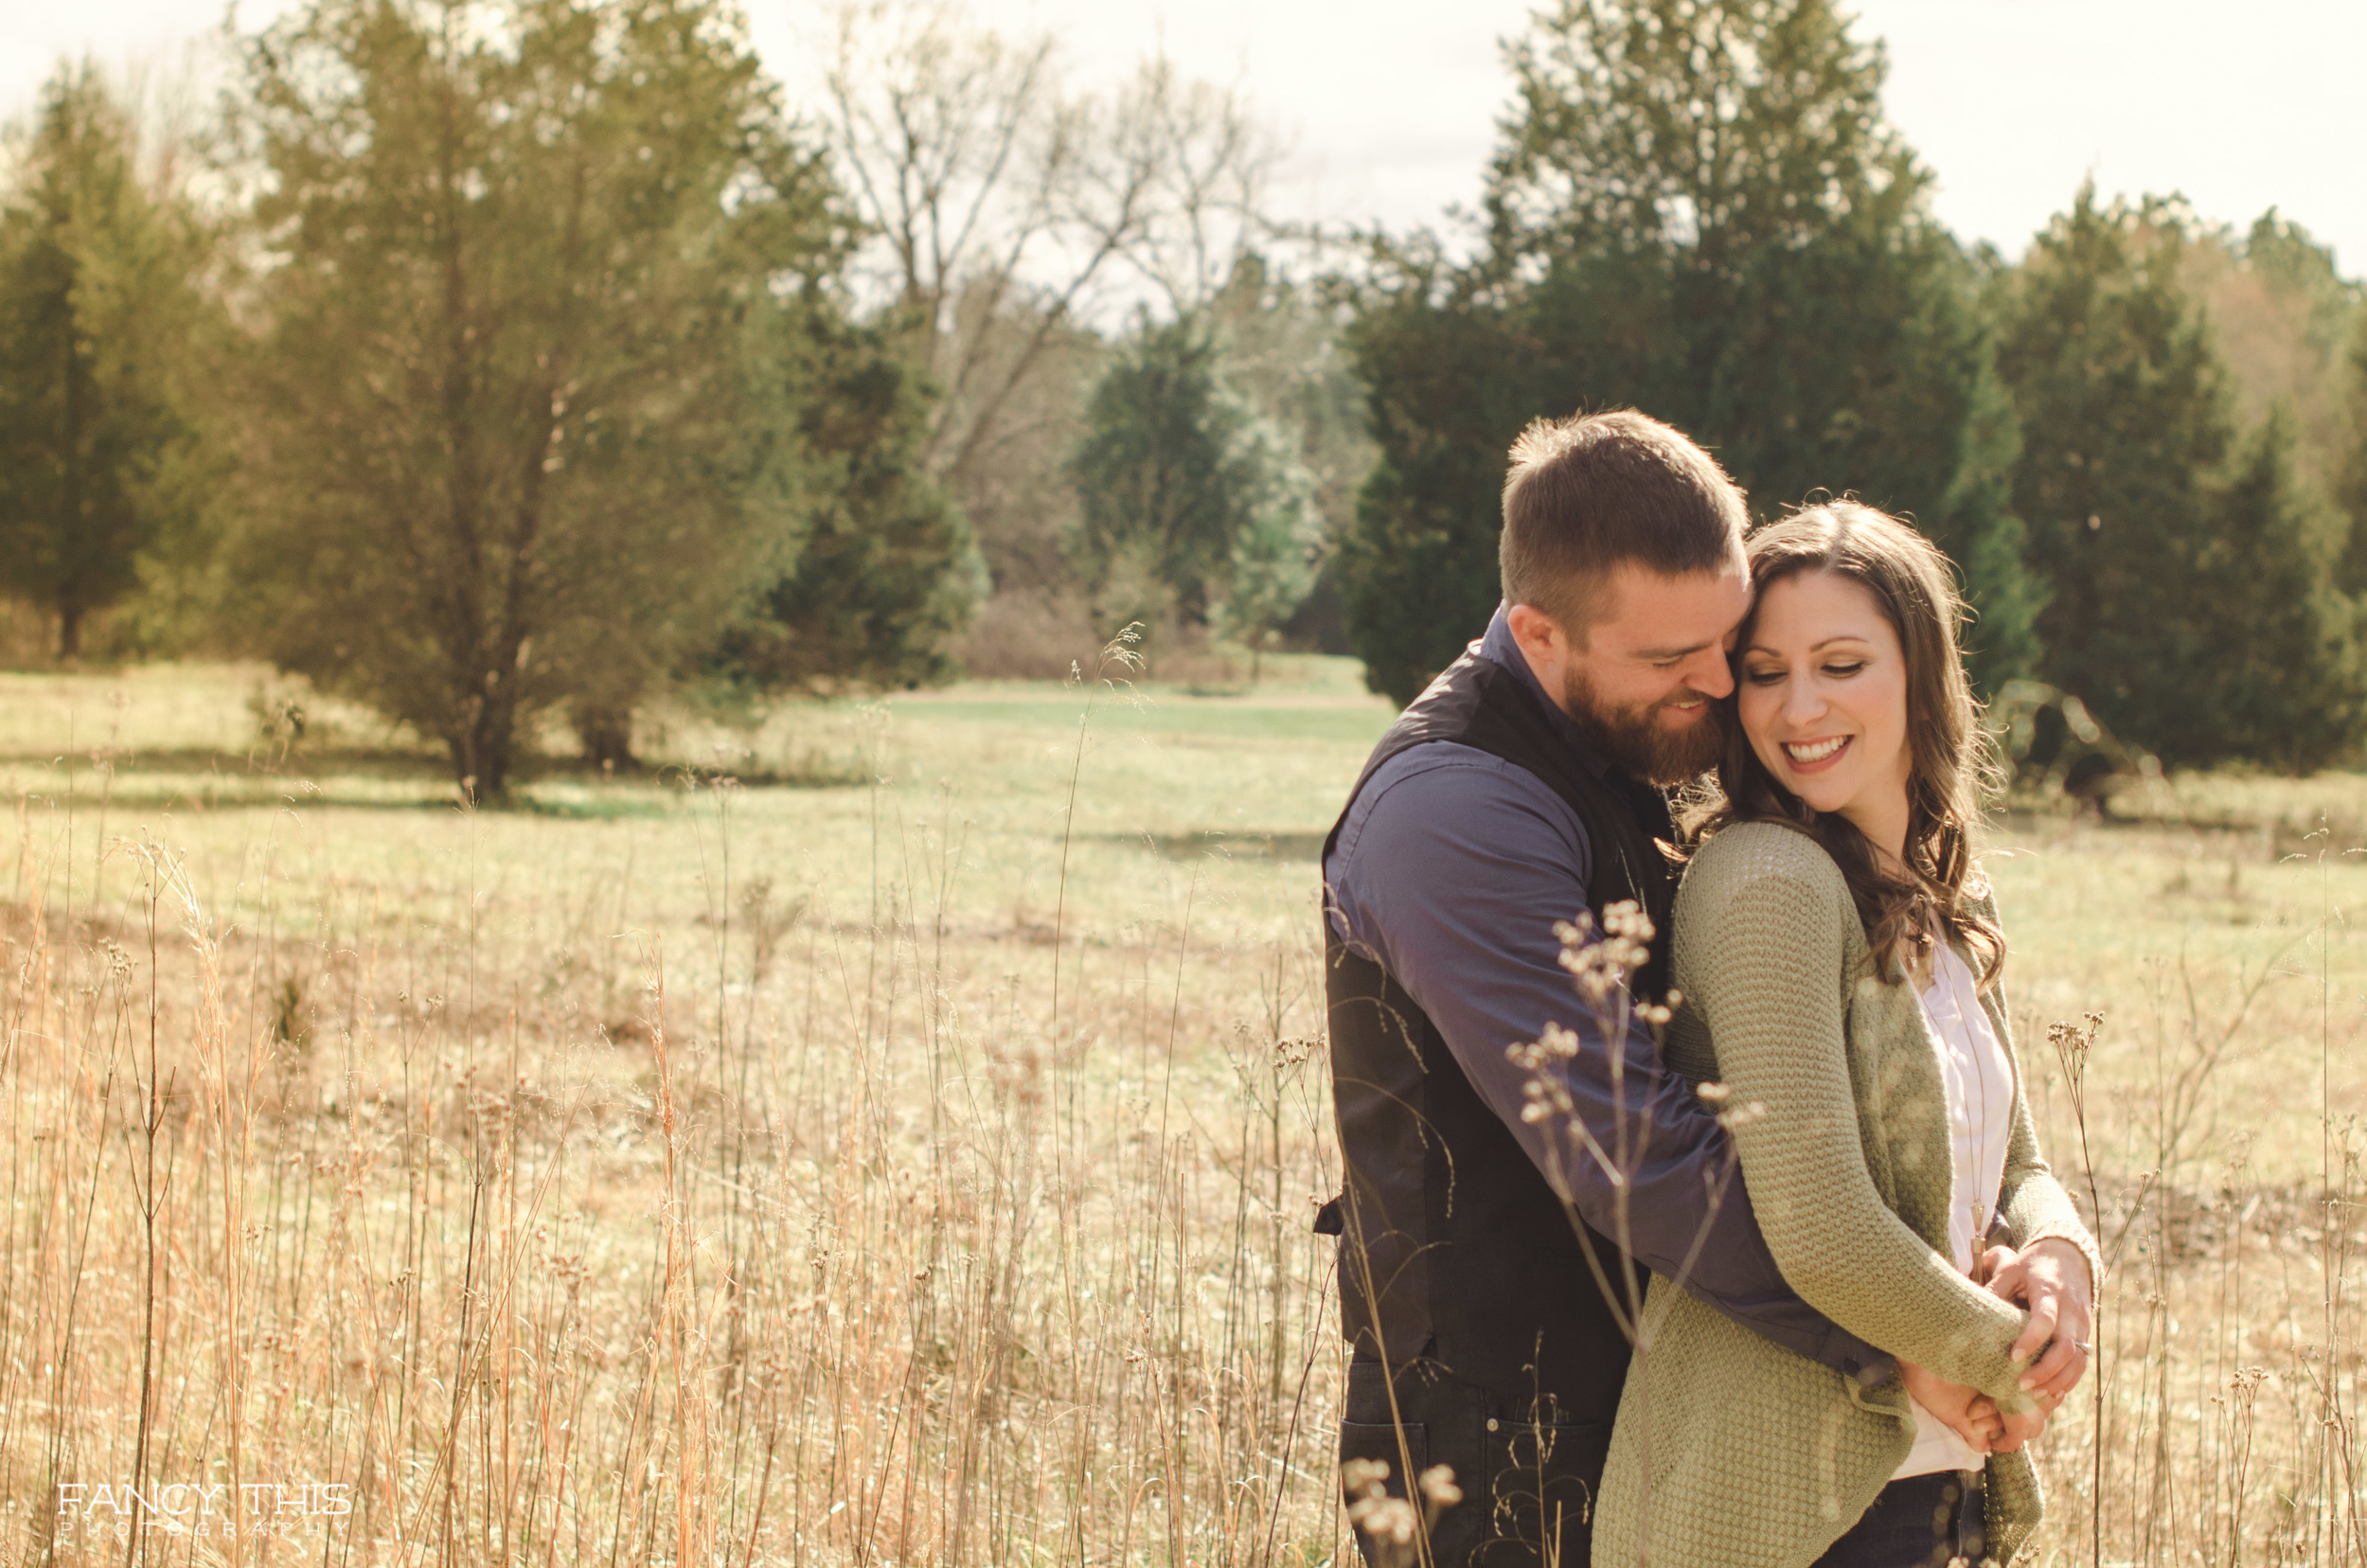 garrett_diana_engagement (7 of 130).jpg